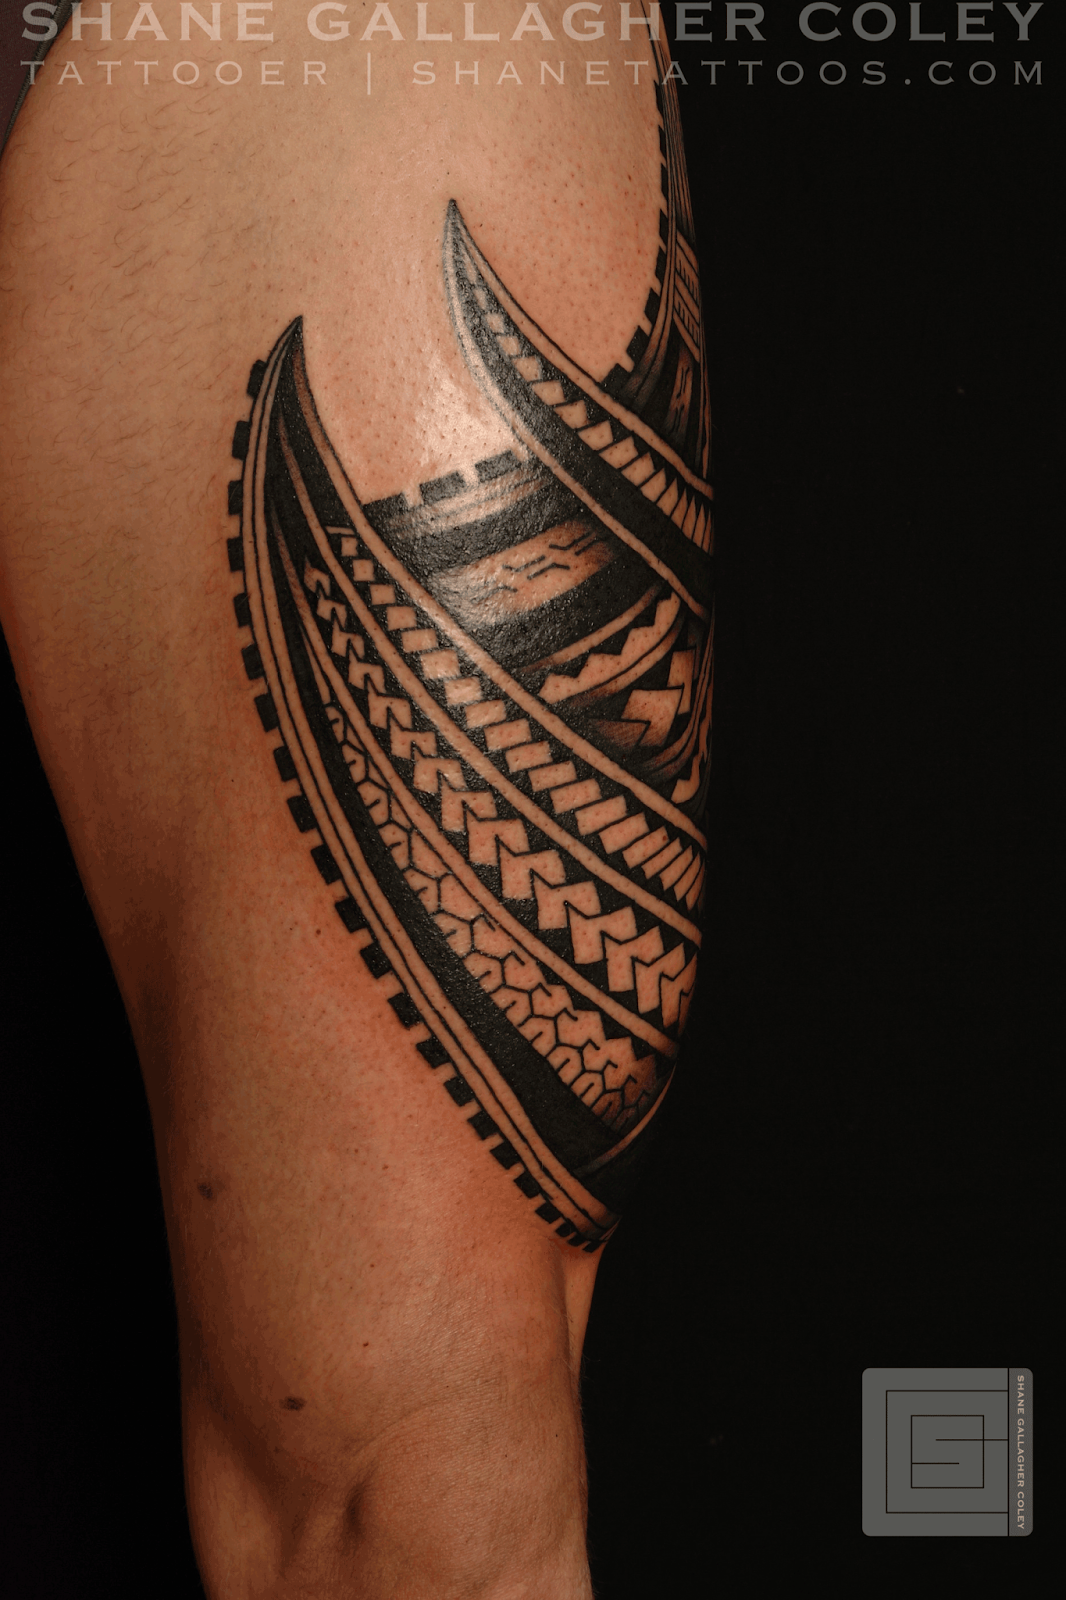 SHANE TATTOOS: Polynesian Thigh Tatau/Tattoo